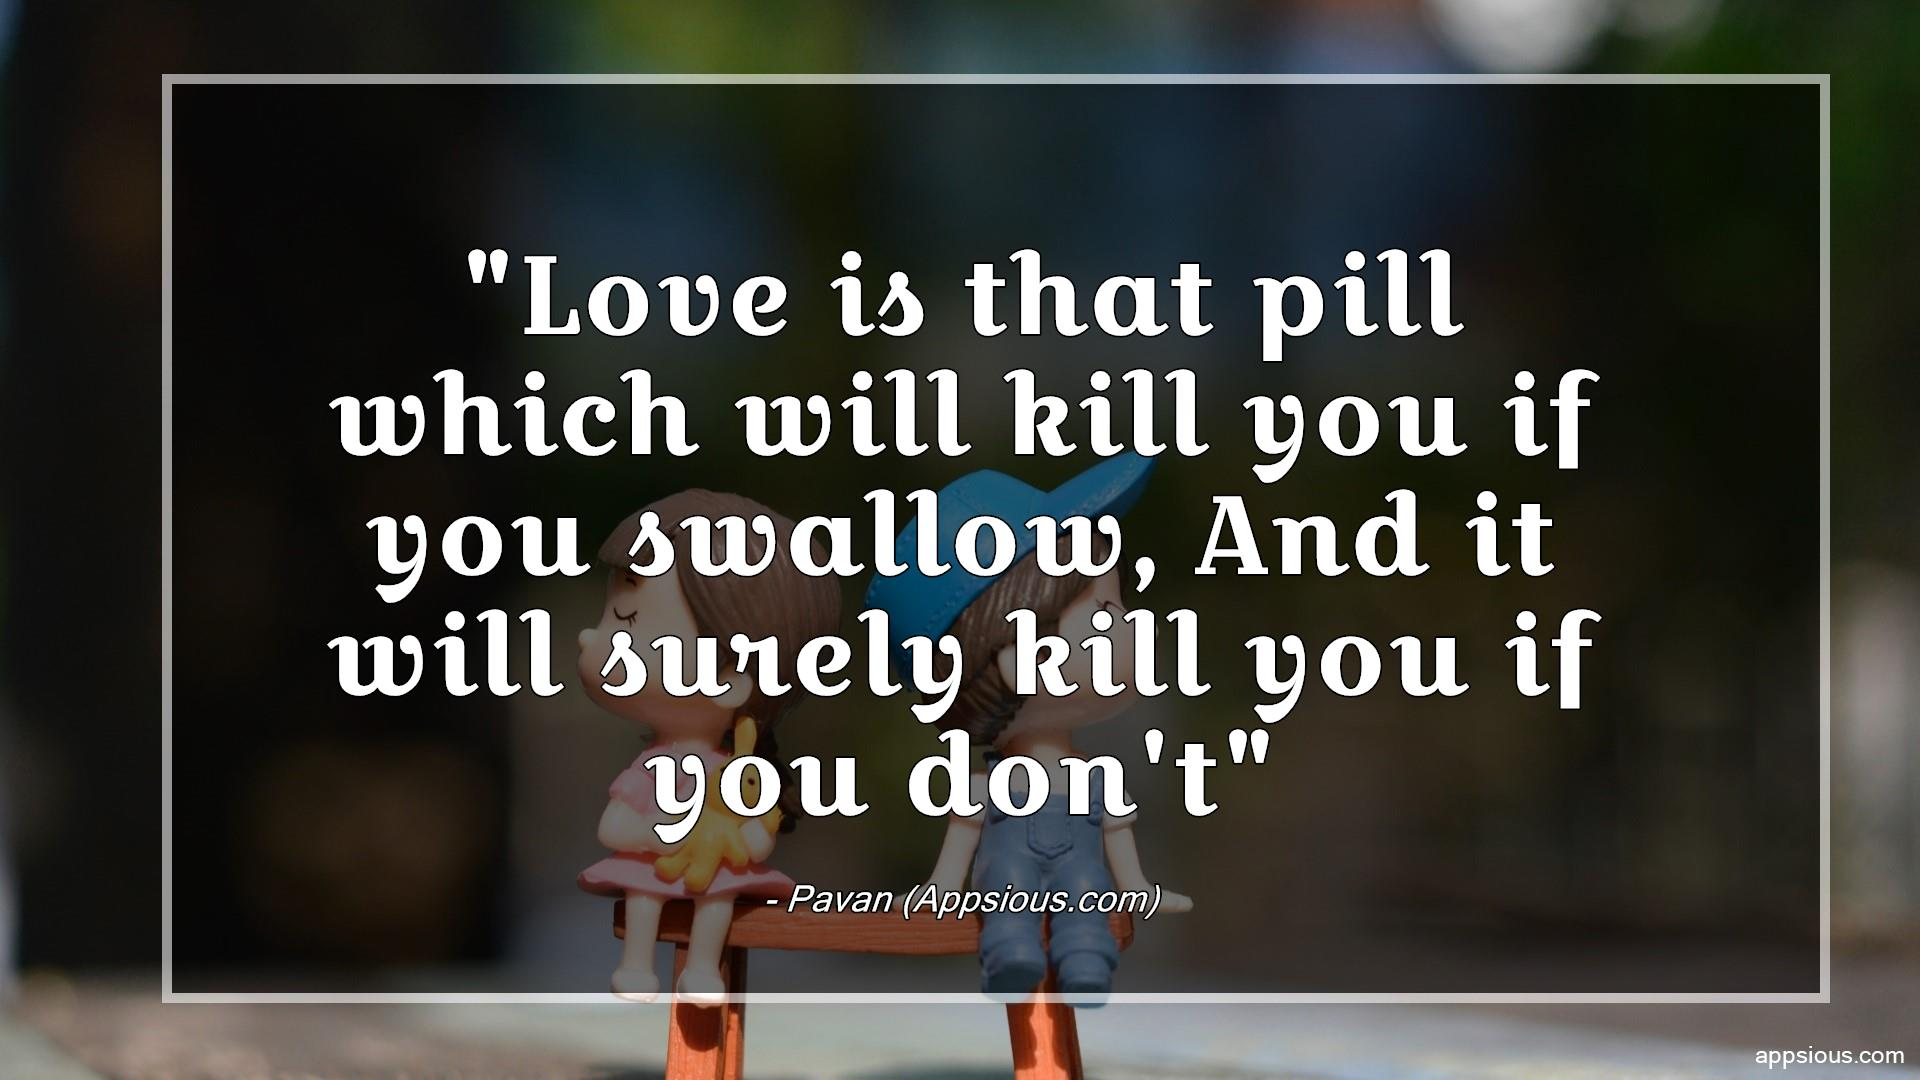 Love is that pill which will kill you if you swallow, And it will surely kill you if you don't